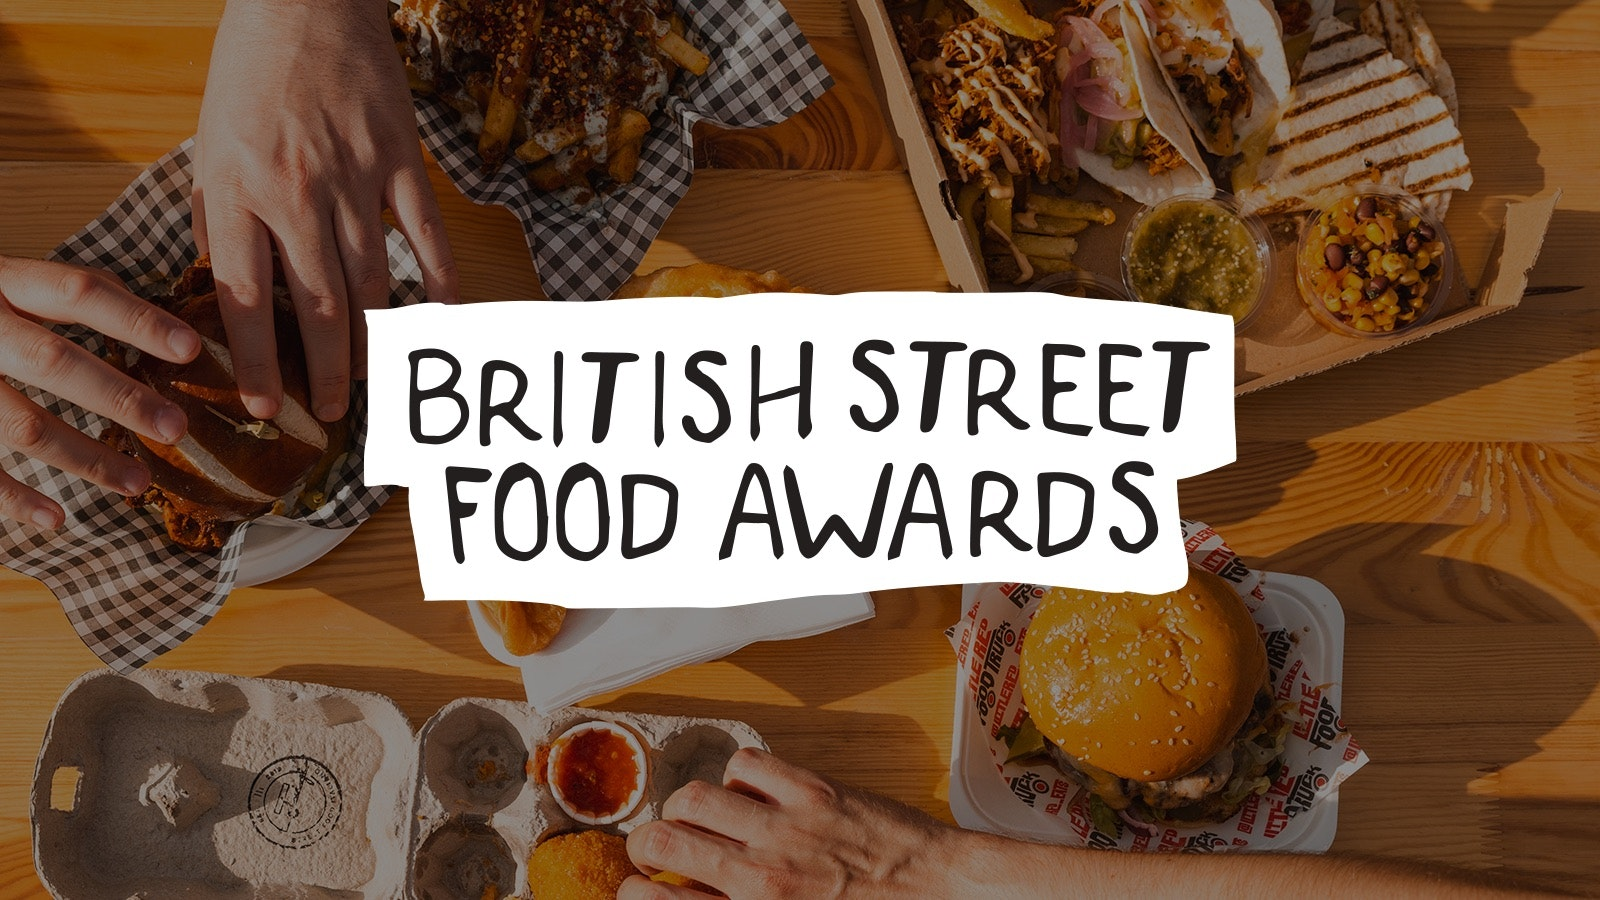 Chow Down: Sunday 22nd August – British Street Food Awards Weekend